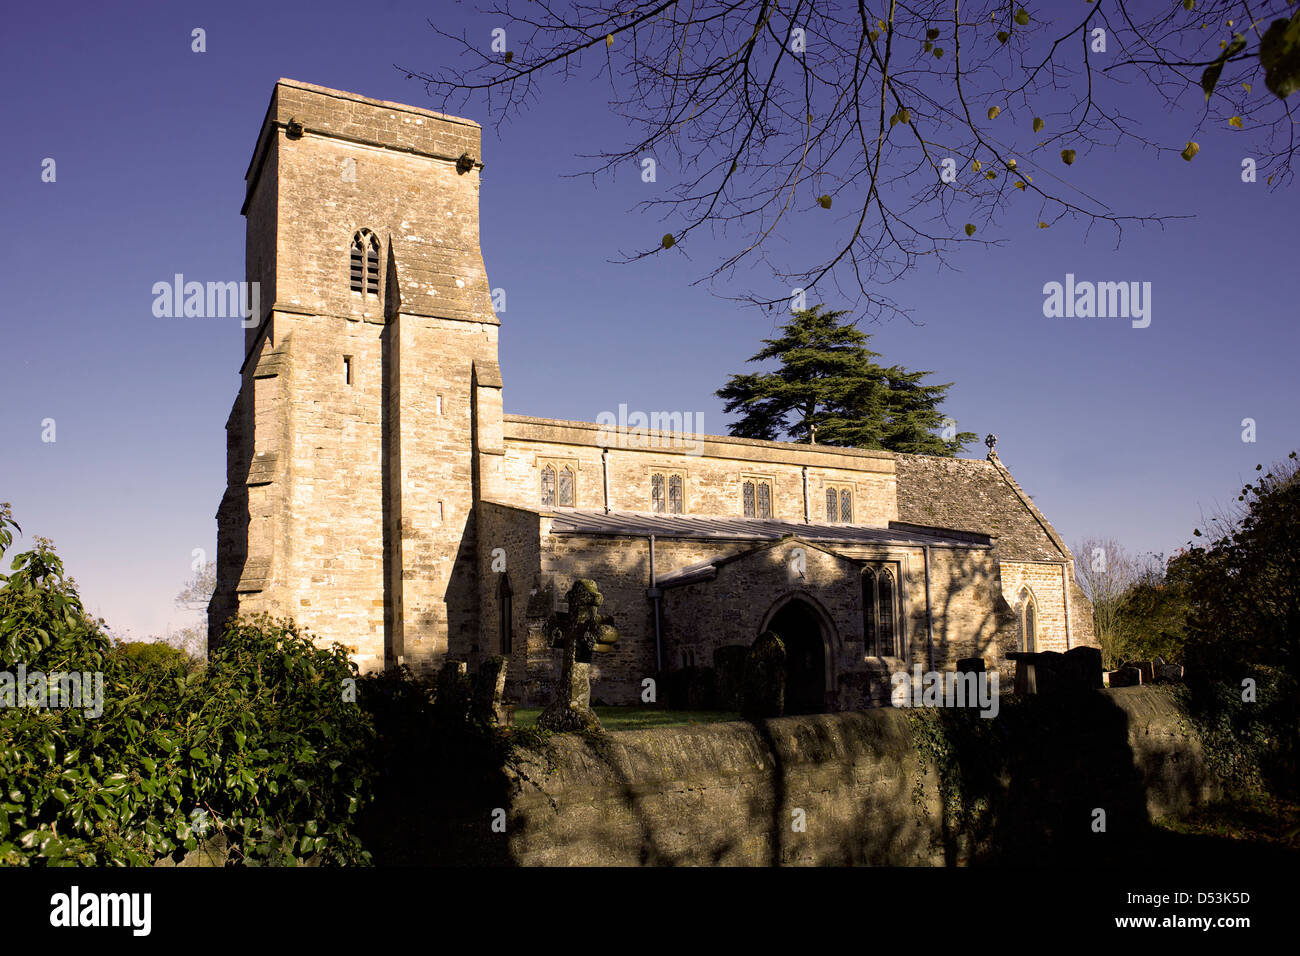 St. Mary's Church Lower Heyford Oxfordshire Oxon England UK GB rural England English Great Britain British countryside - Stock Image